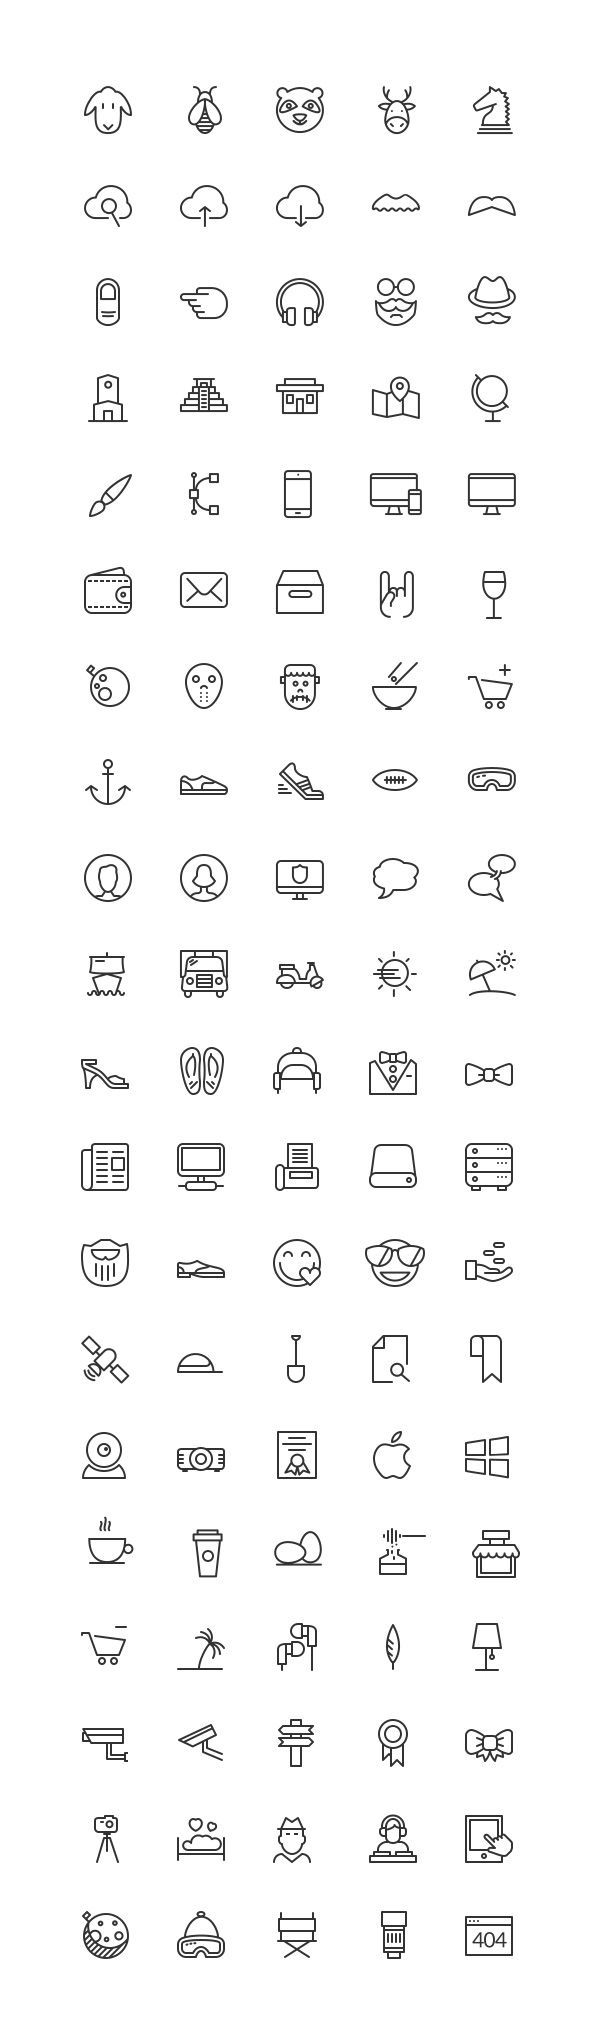 Free download icons mind 100 free ios 8 icons